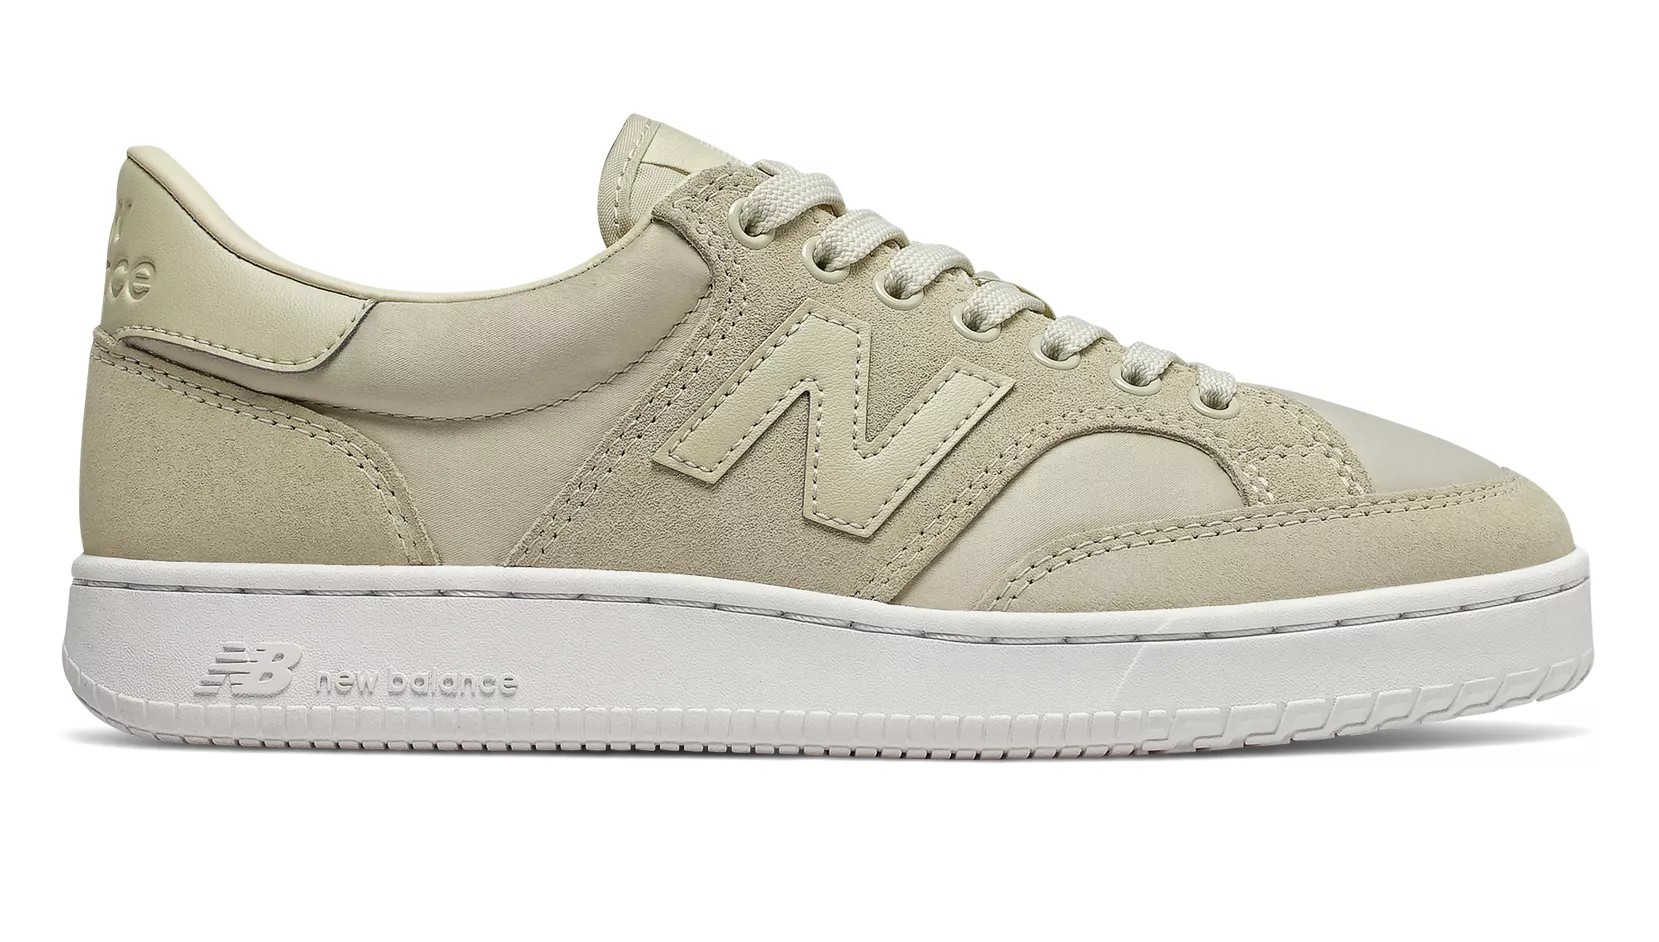 New Balance Pro Court Cup